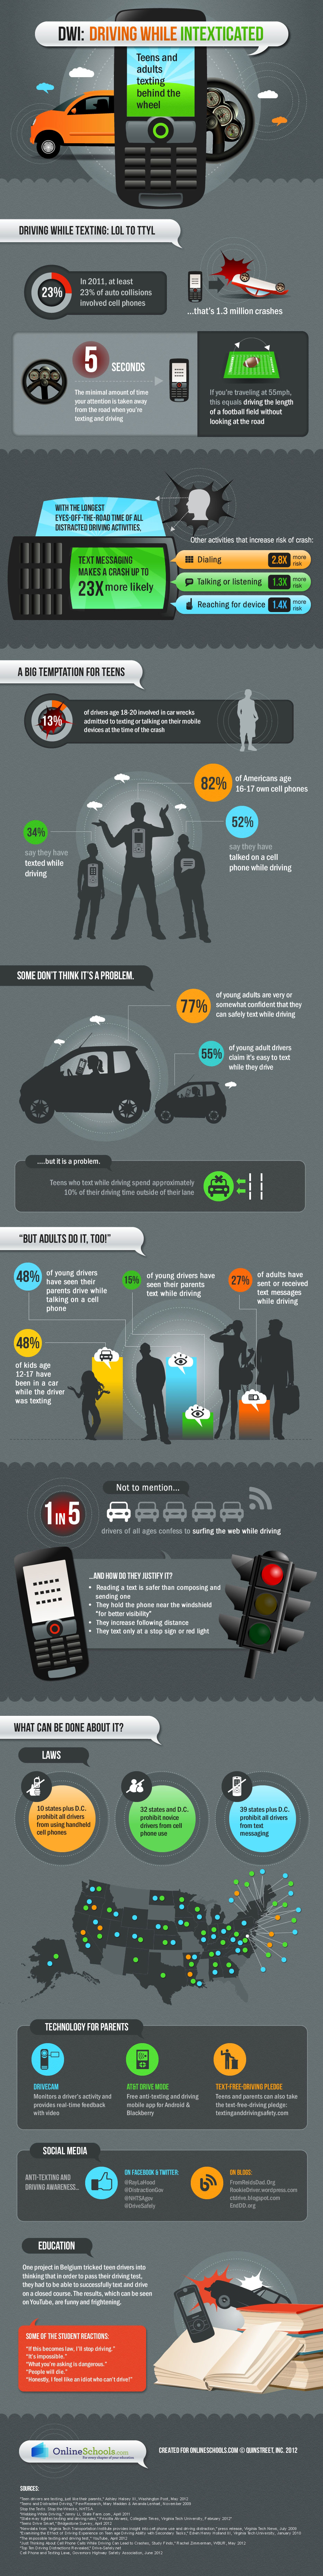 the-driving-while-intexicated-infographic